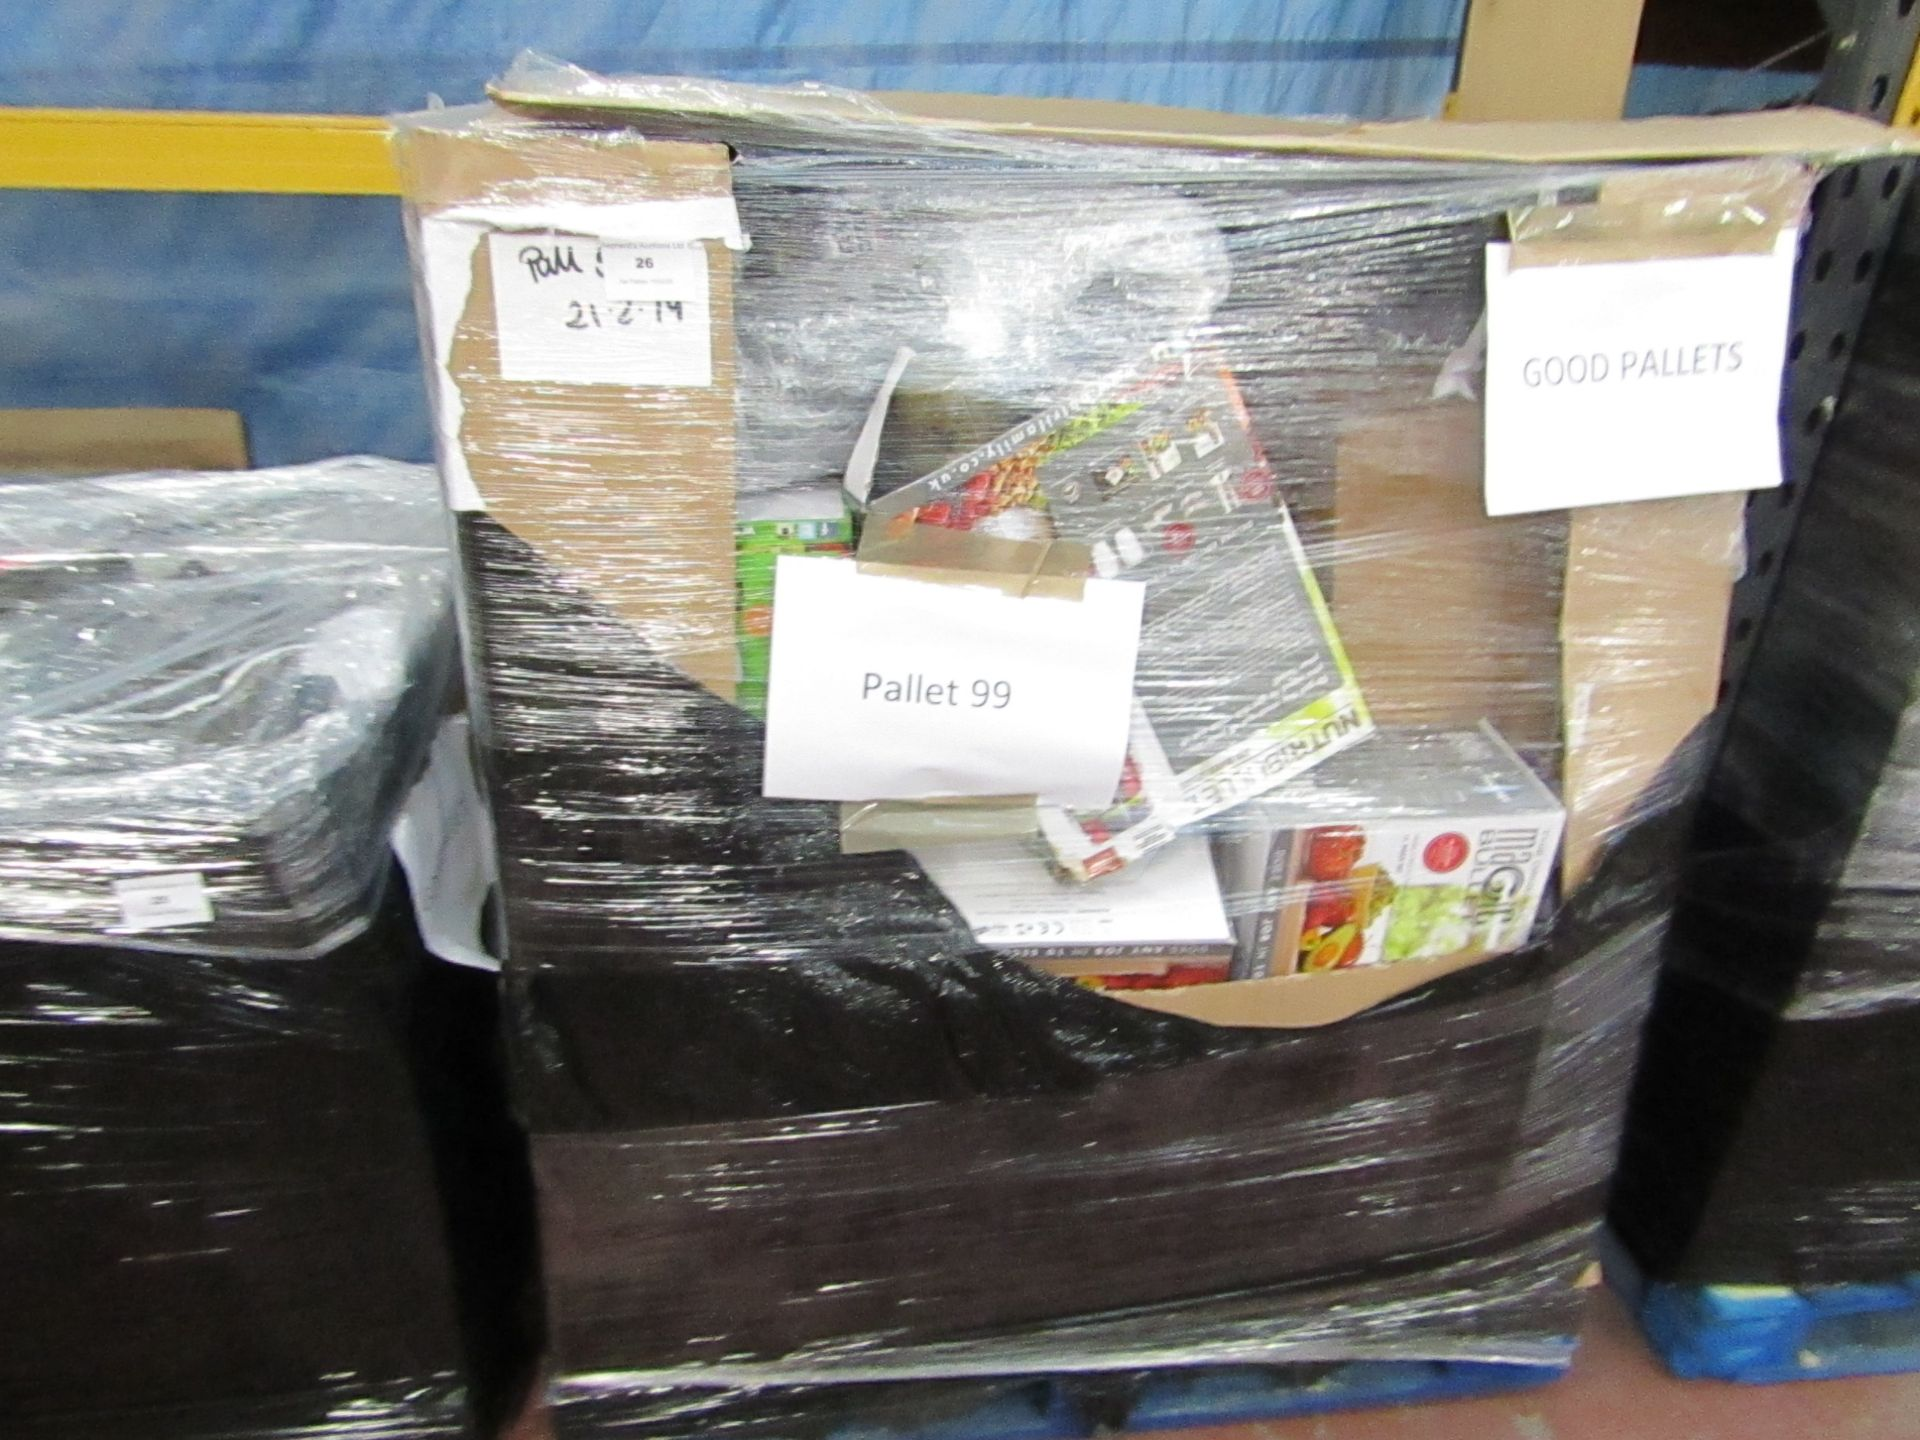 Lot 26 - | APPROX 42X | THE PALLET CONTAINS NUTRI BULLET, AIR FRYER XL'S, AIR HAWK AND MORE | BOXED AND